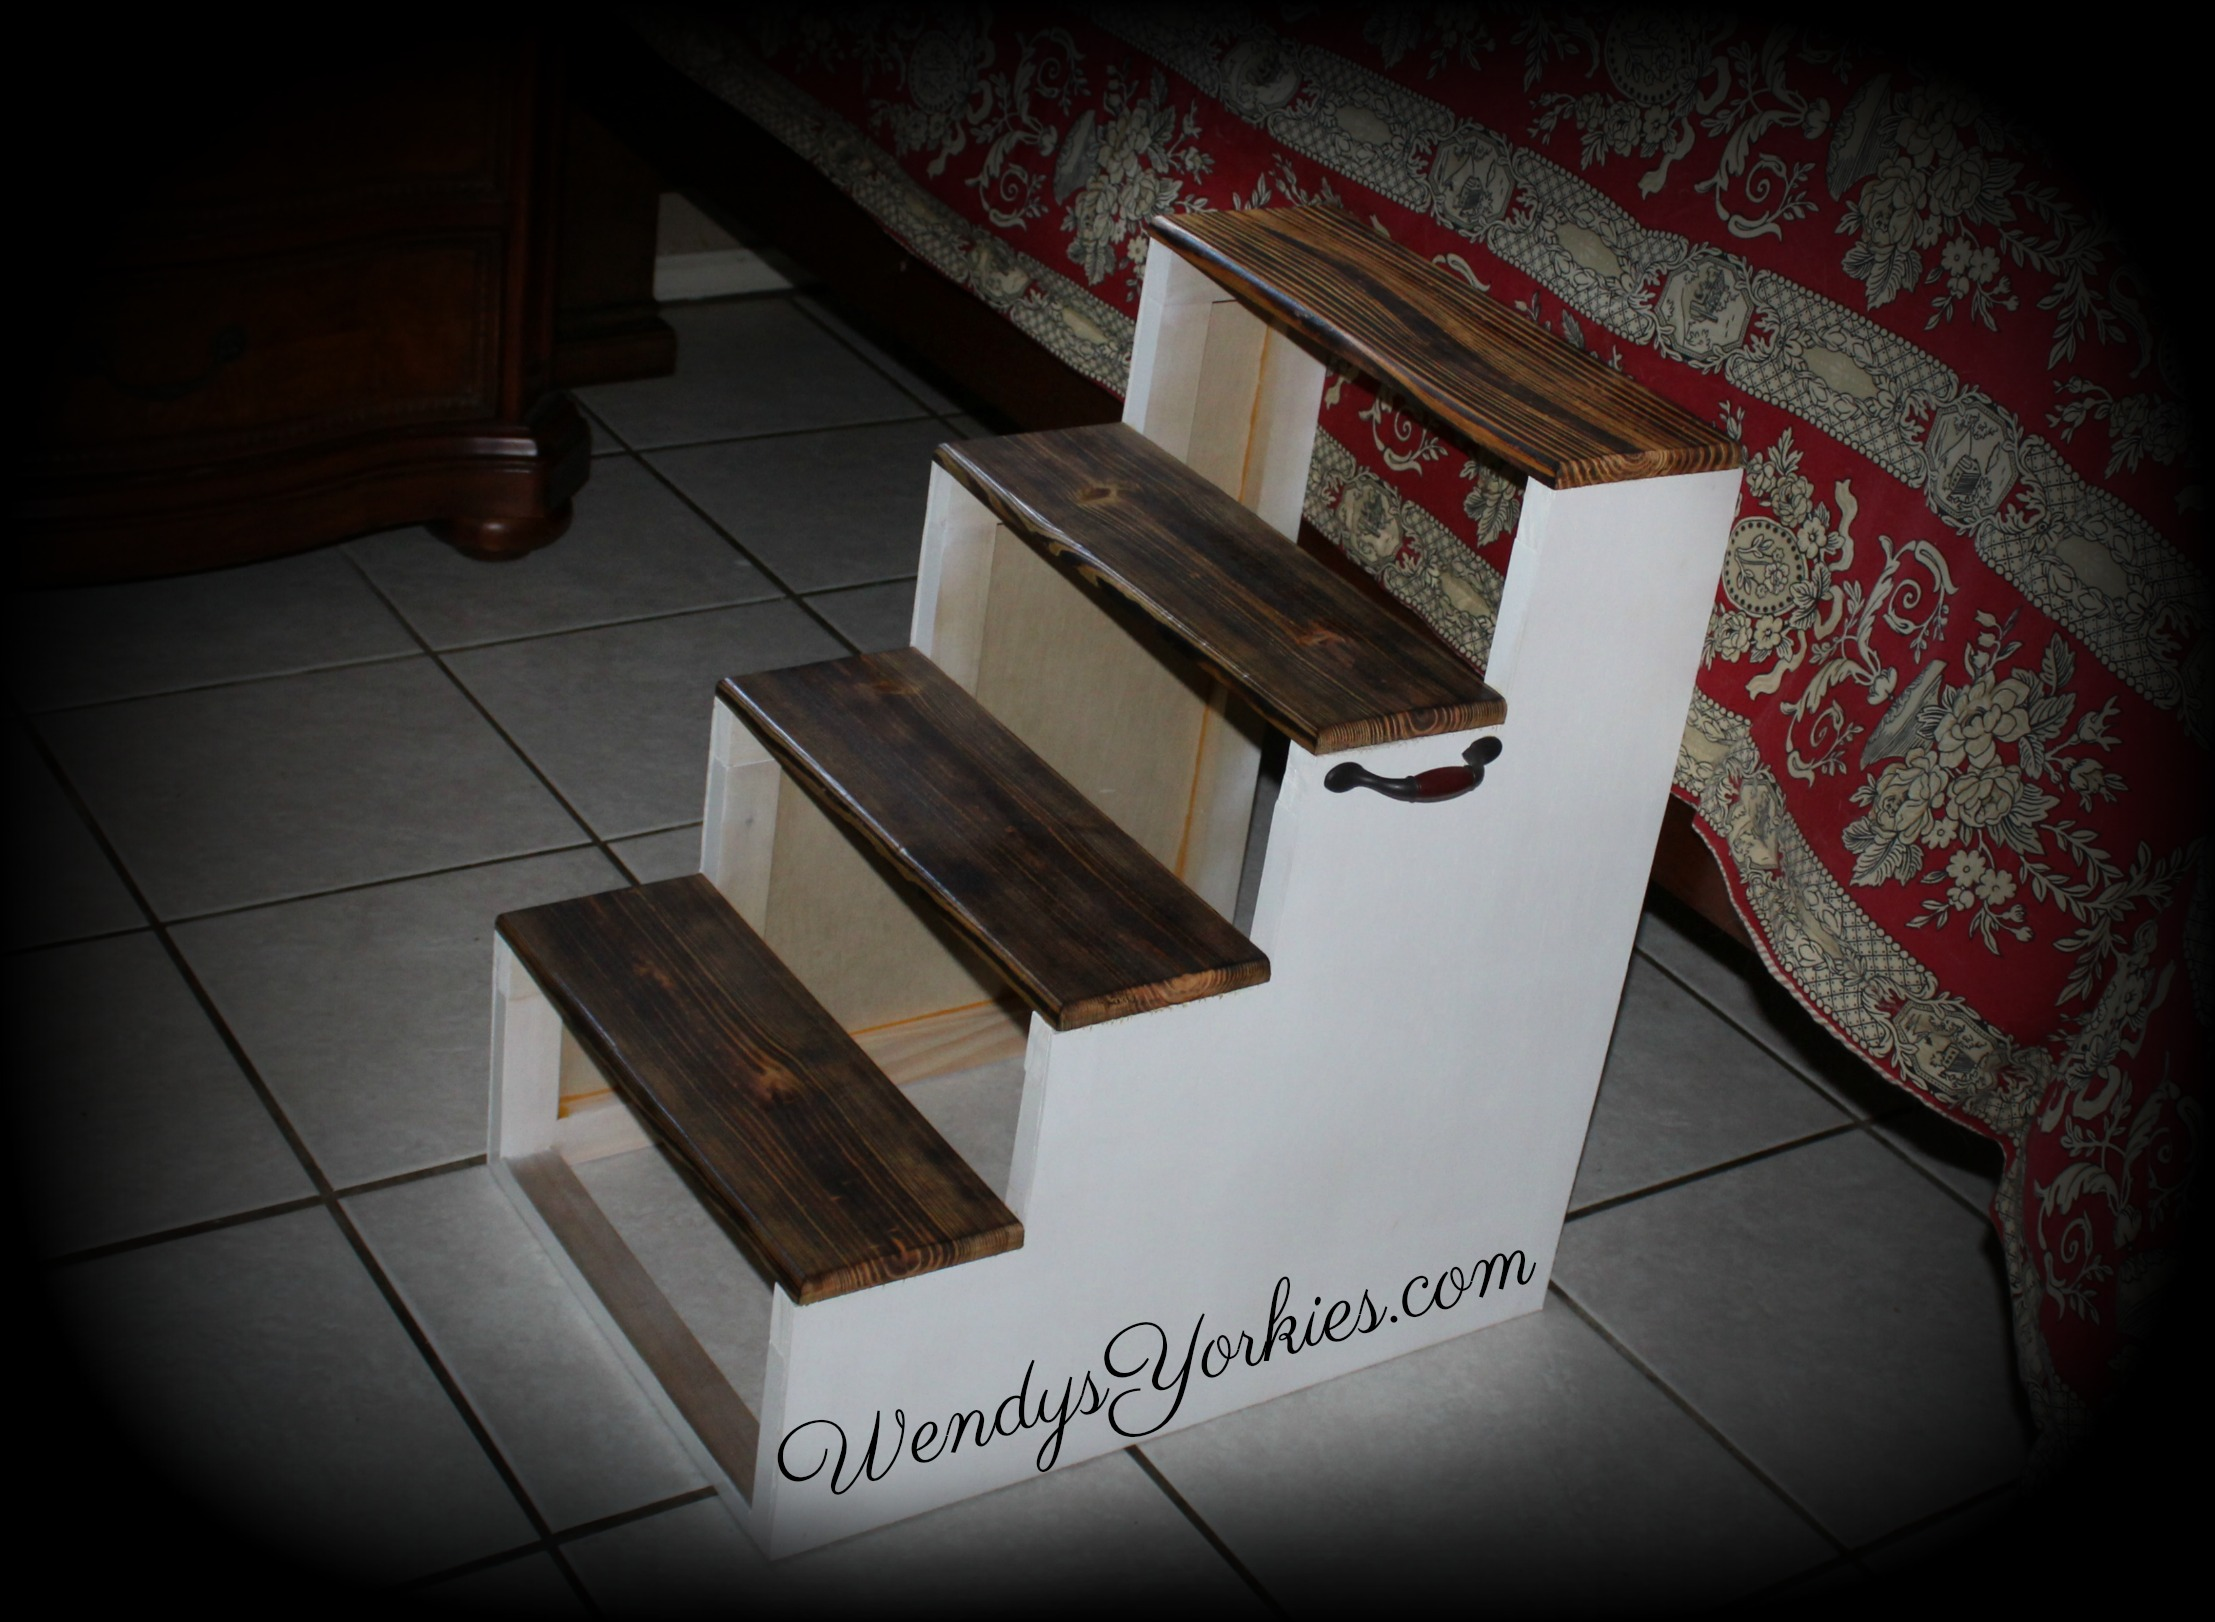 Custom Dog steps, WendysYorkies.com